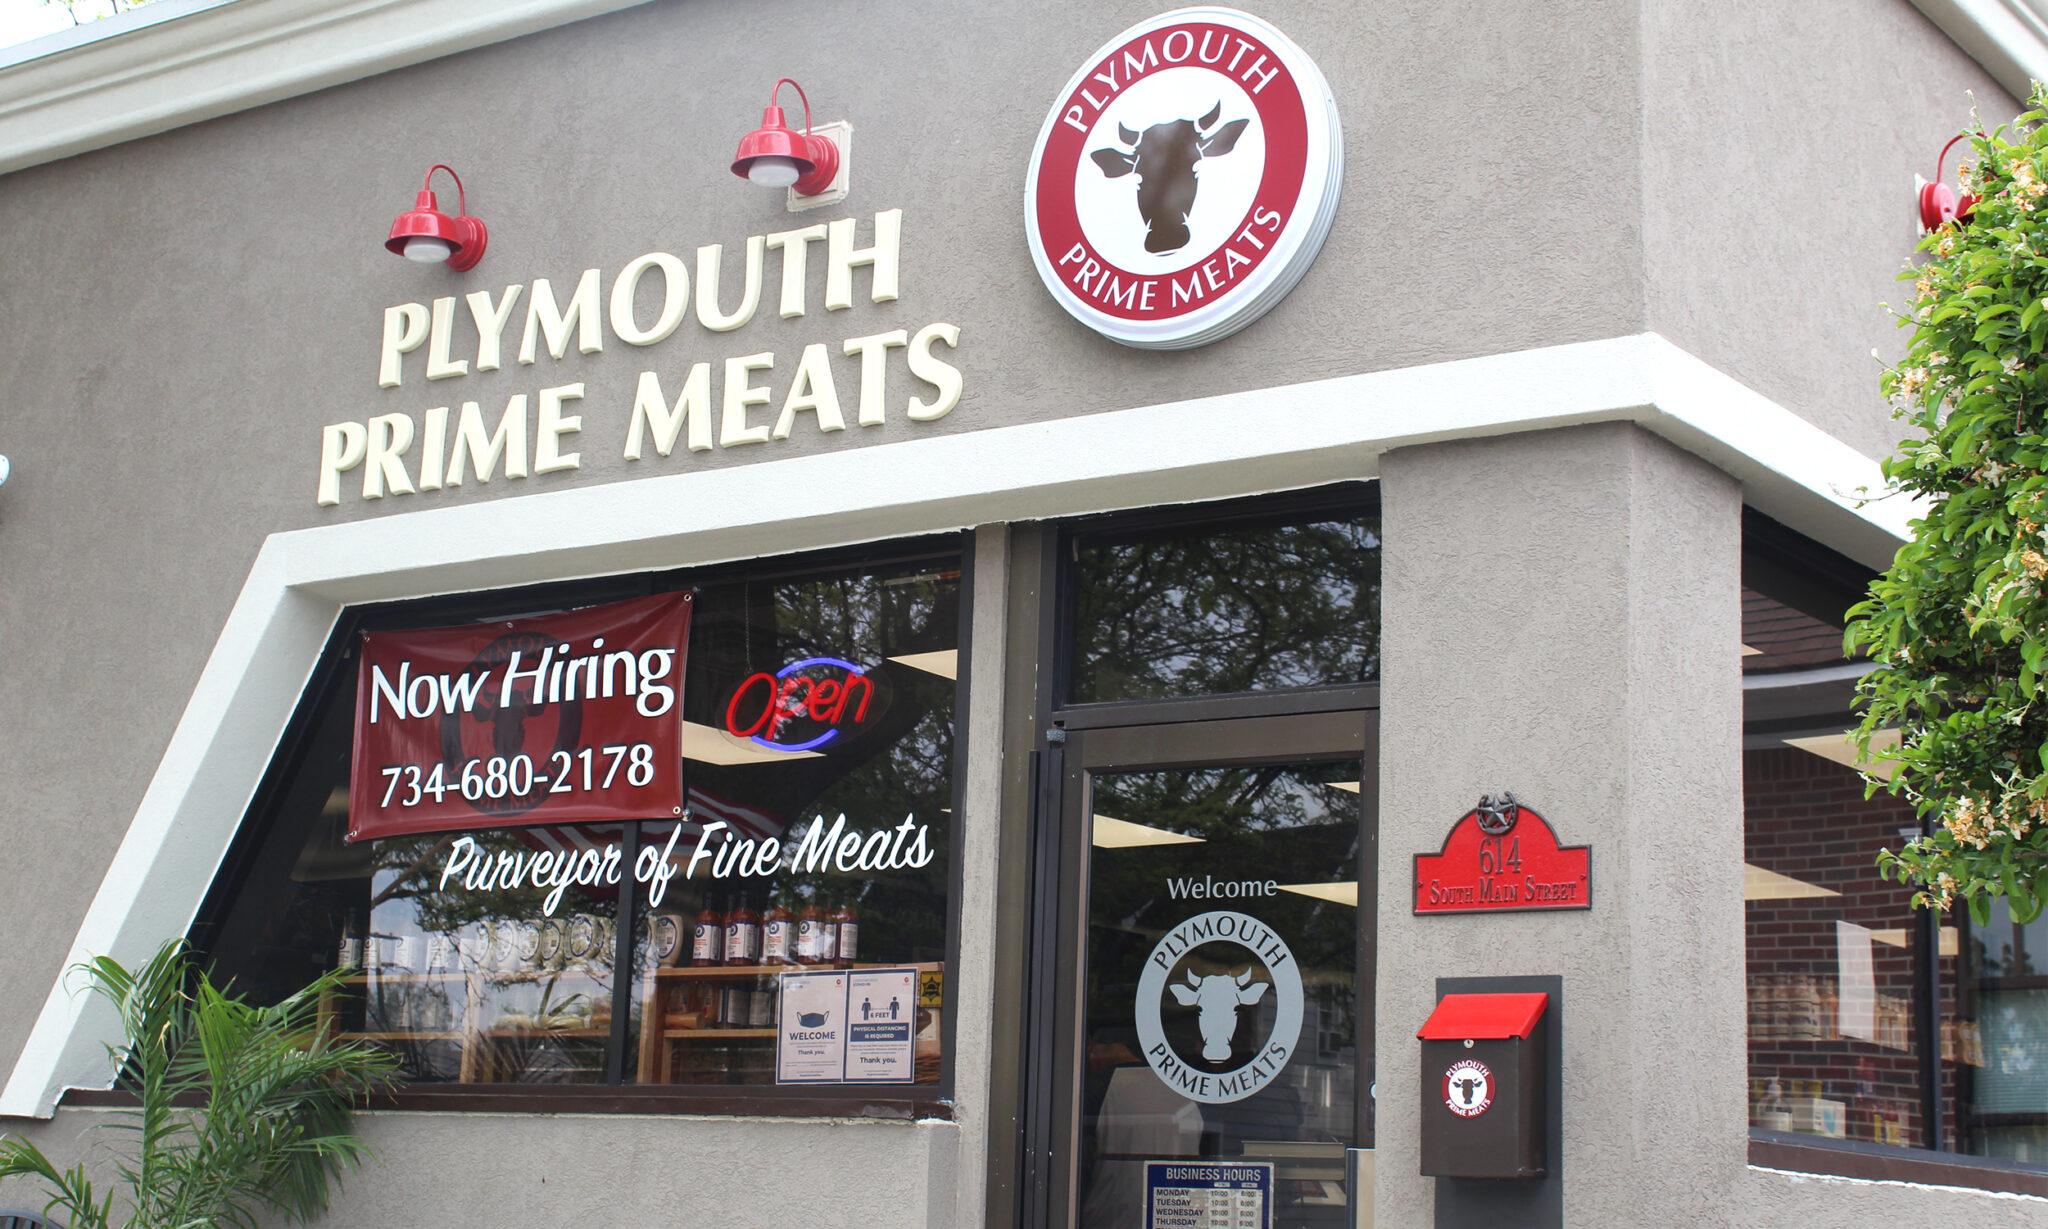 outside of plymouth prime meats building